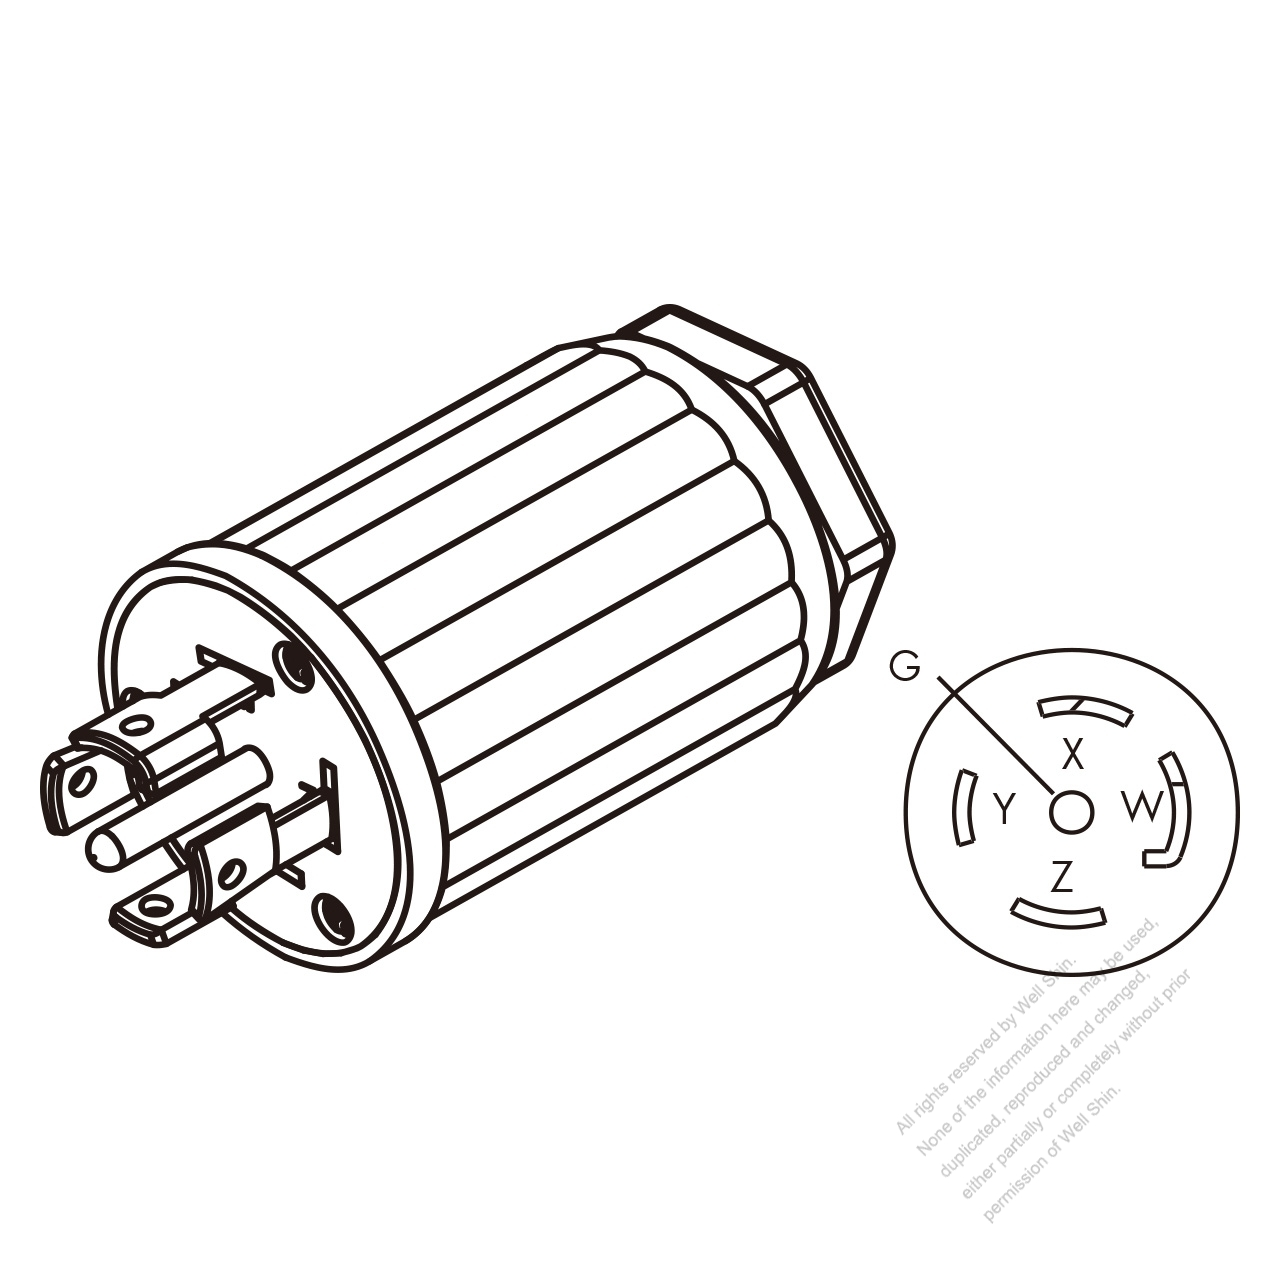 10 Pole Motor Wiring Diagram